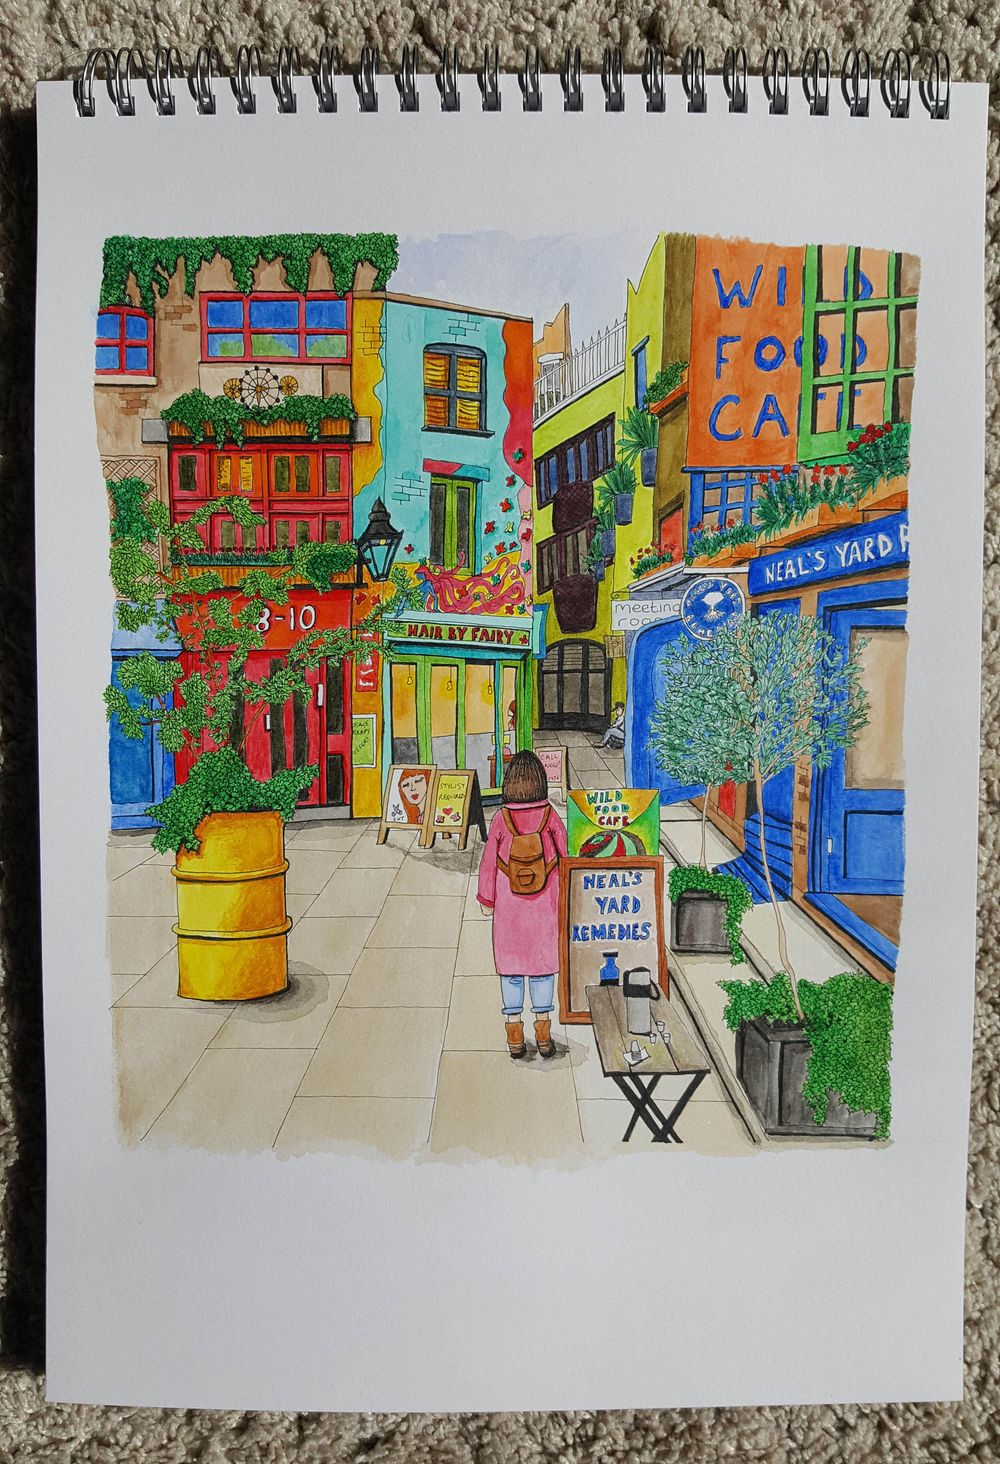 Neal's Yard, London - image 1 - student project